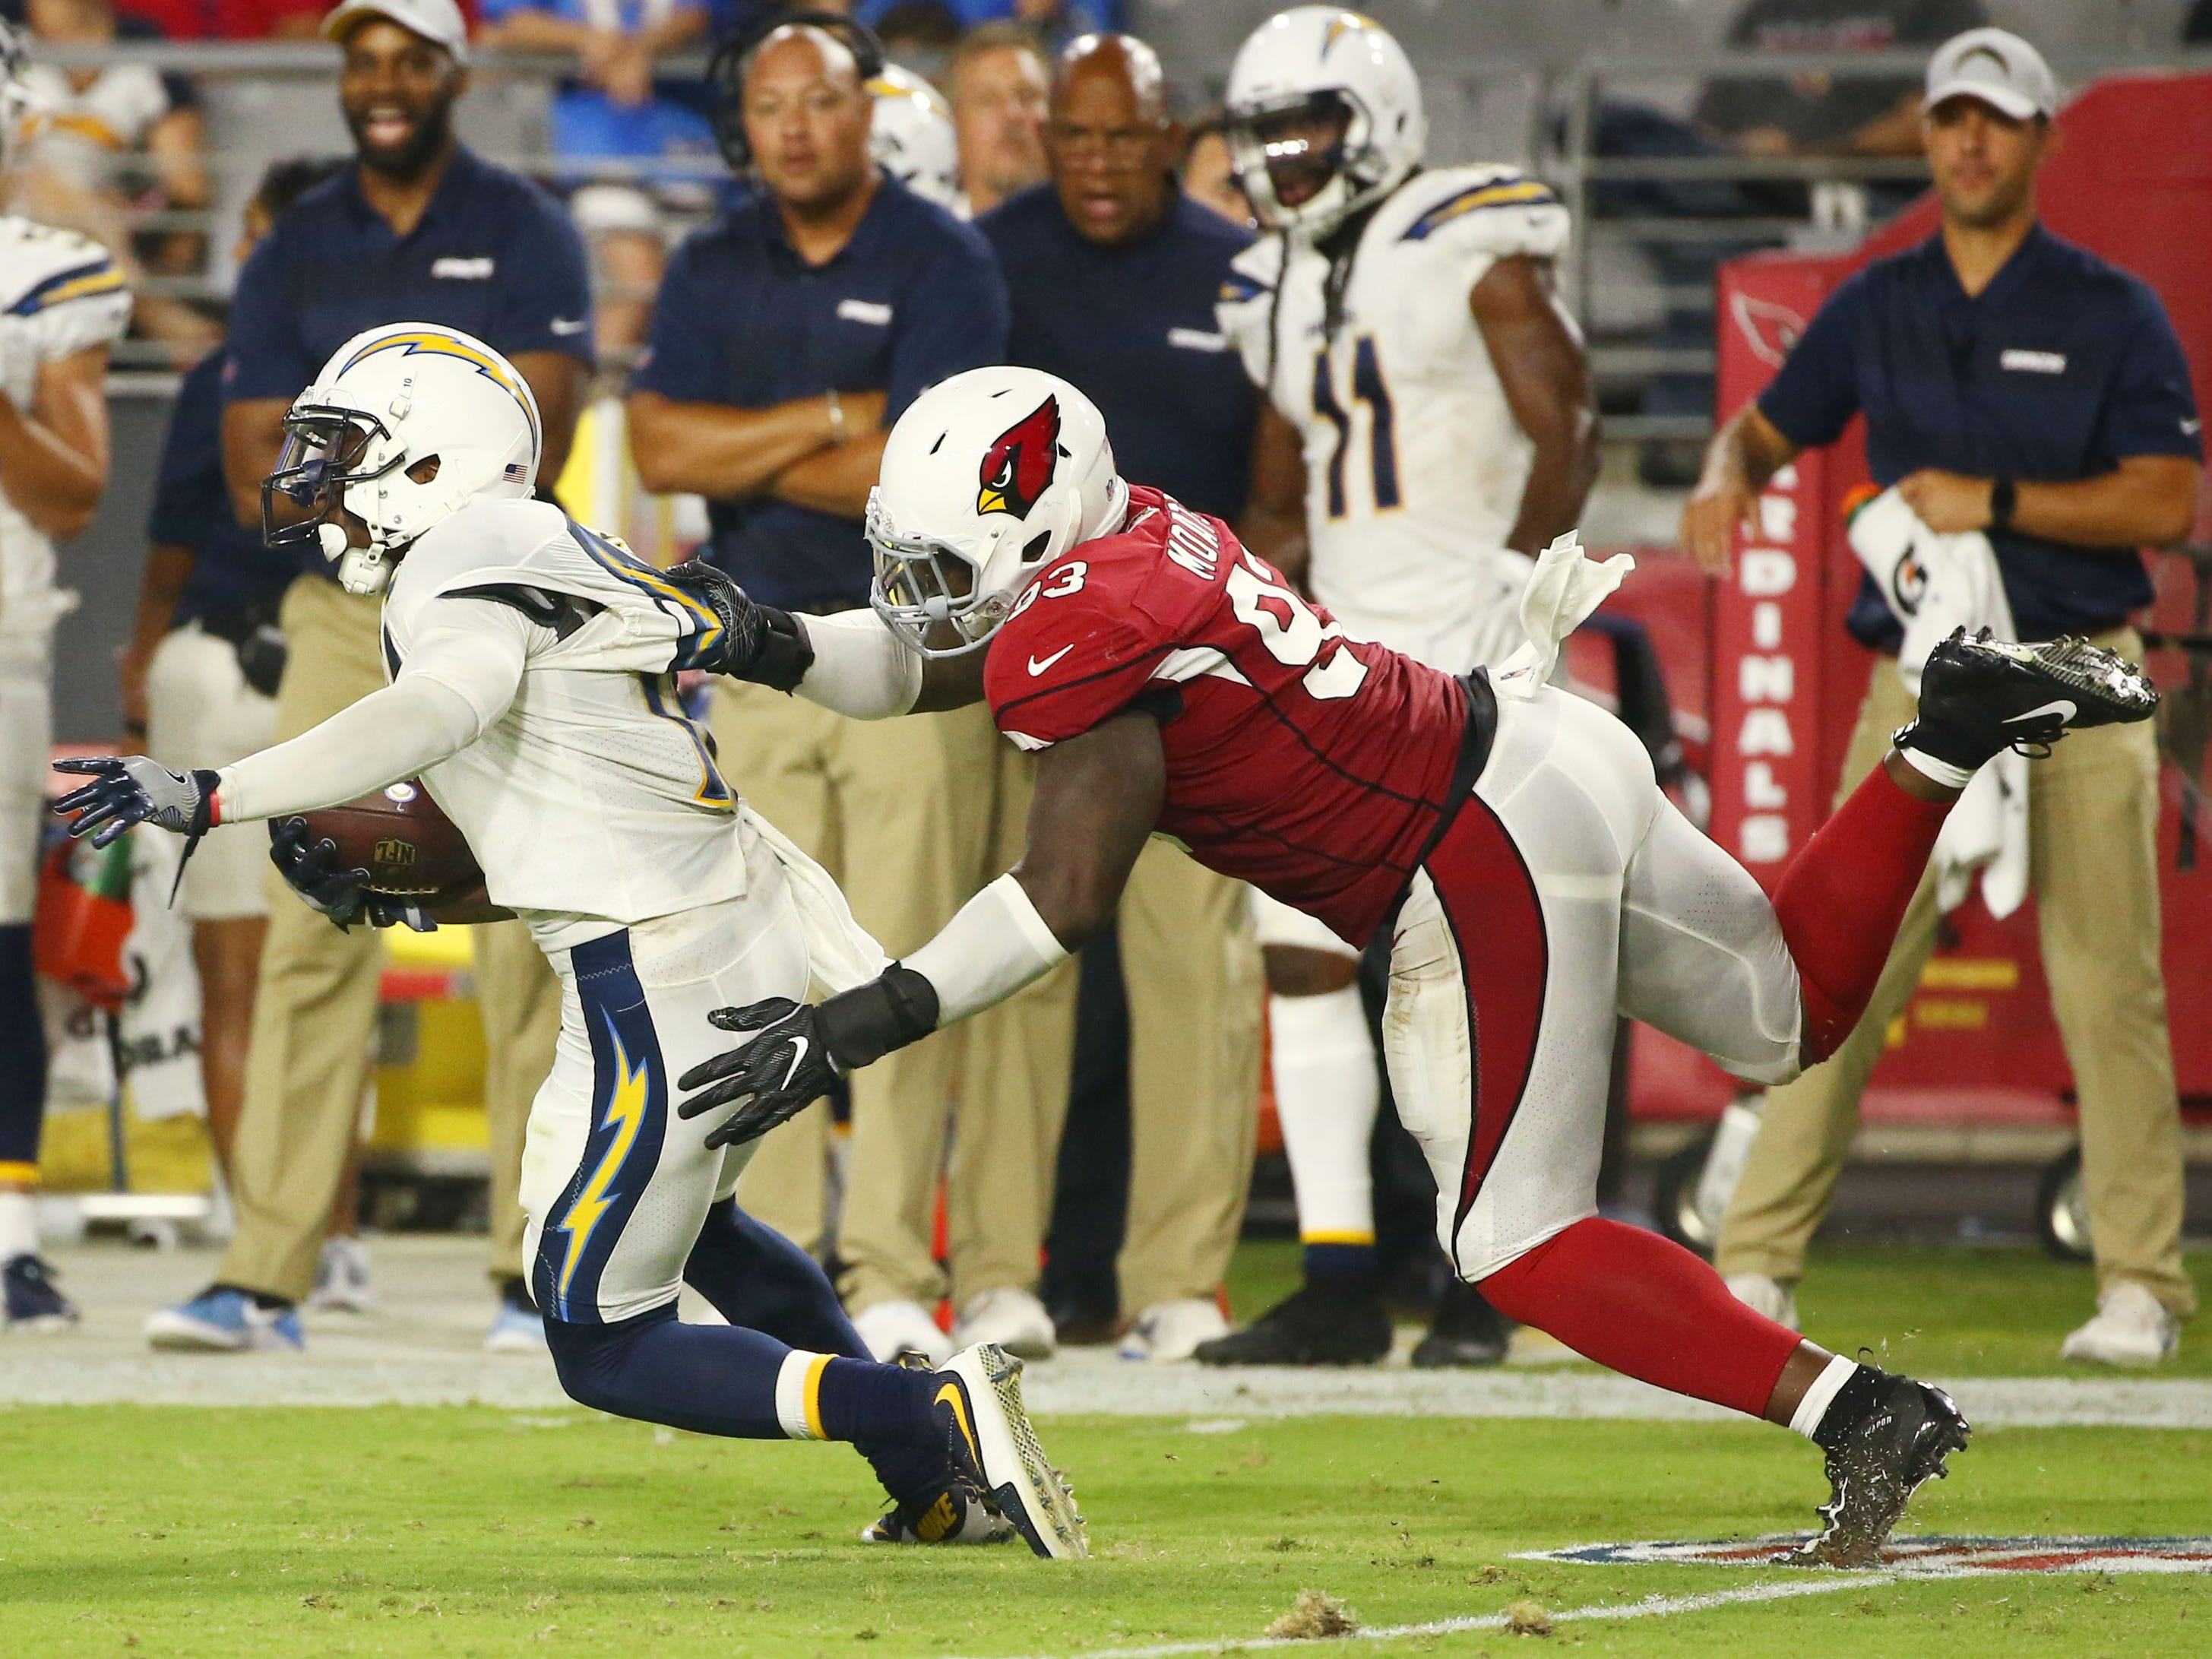 Arizona Cardinals Arthur Moats tackles L.A. Chargers Artavis Scott in the second half during a preseason NFL football game on Aug. 11, 2018 at University of Phoenix Stadium in Glendale, Ariz.